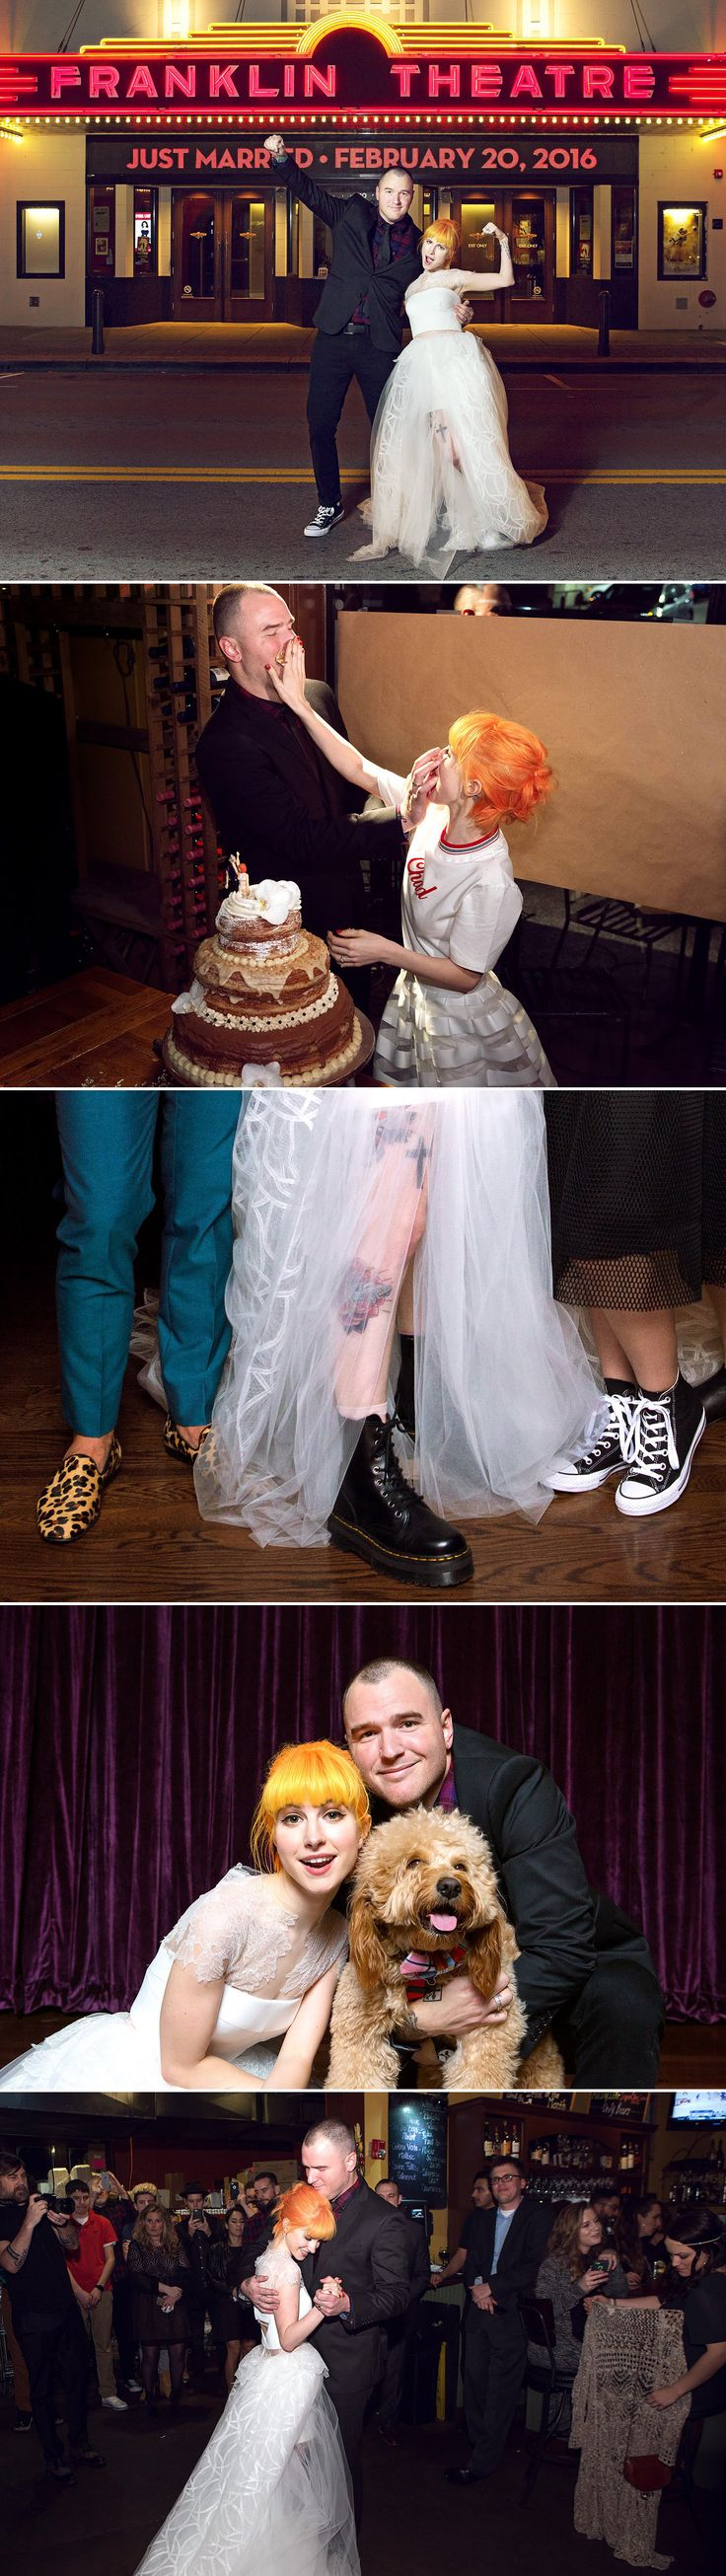 Paramore's Hayley Williams' punk star wedding at The Franklin Theatre // Celebrity wedding inspiration {Instagram: theweddingscoop}